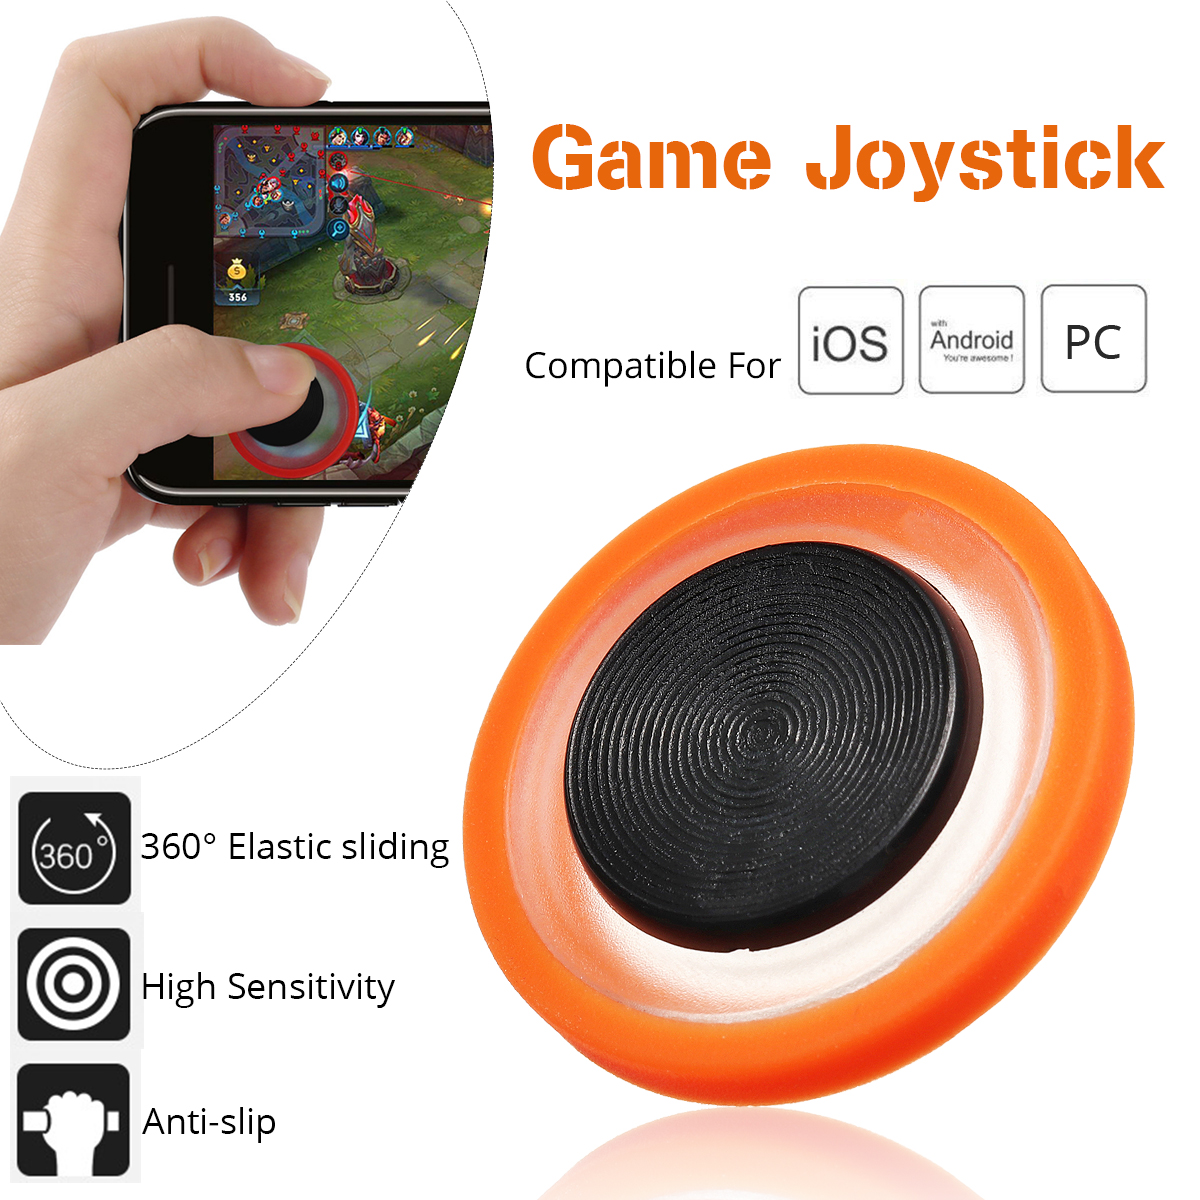 1Pcs Mobile Phone Game Joystick Smartphone Game Pad Controller Gaming Trigger For PUBG Mobile for IOS Android PC